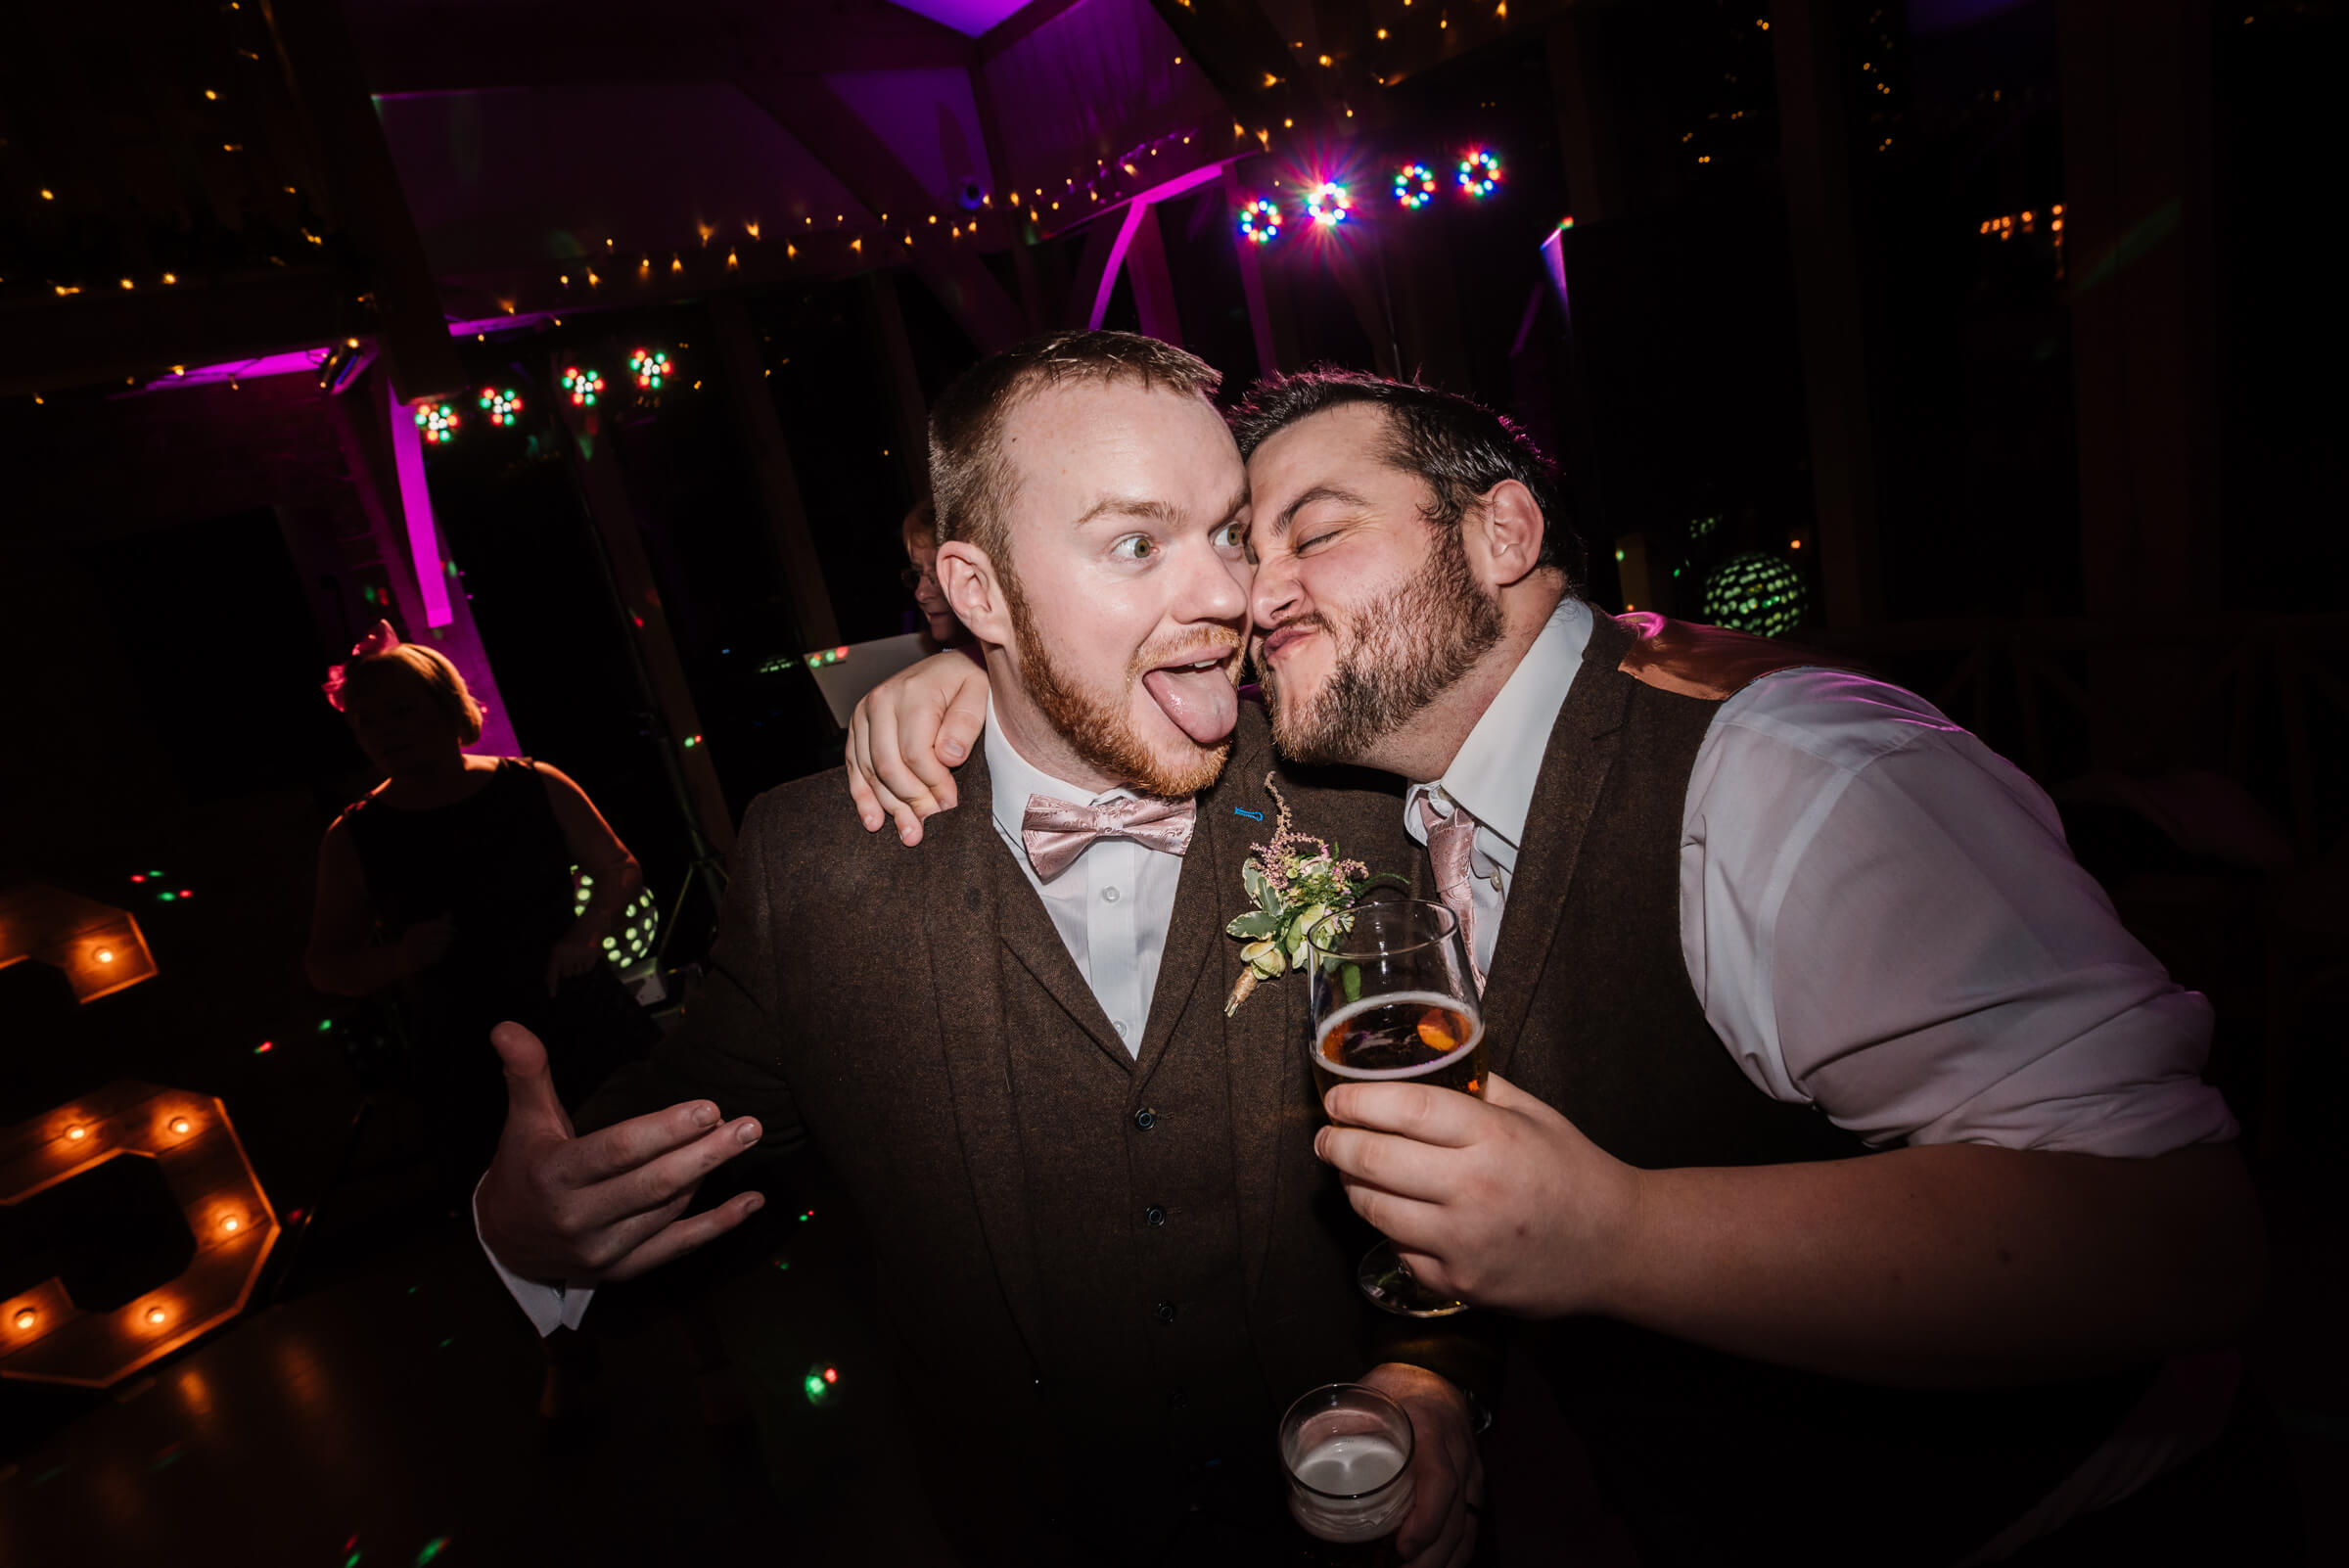 groom pulling funny face with groomsman